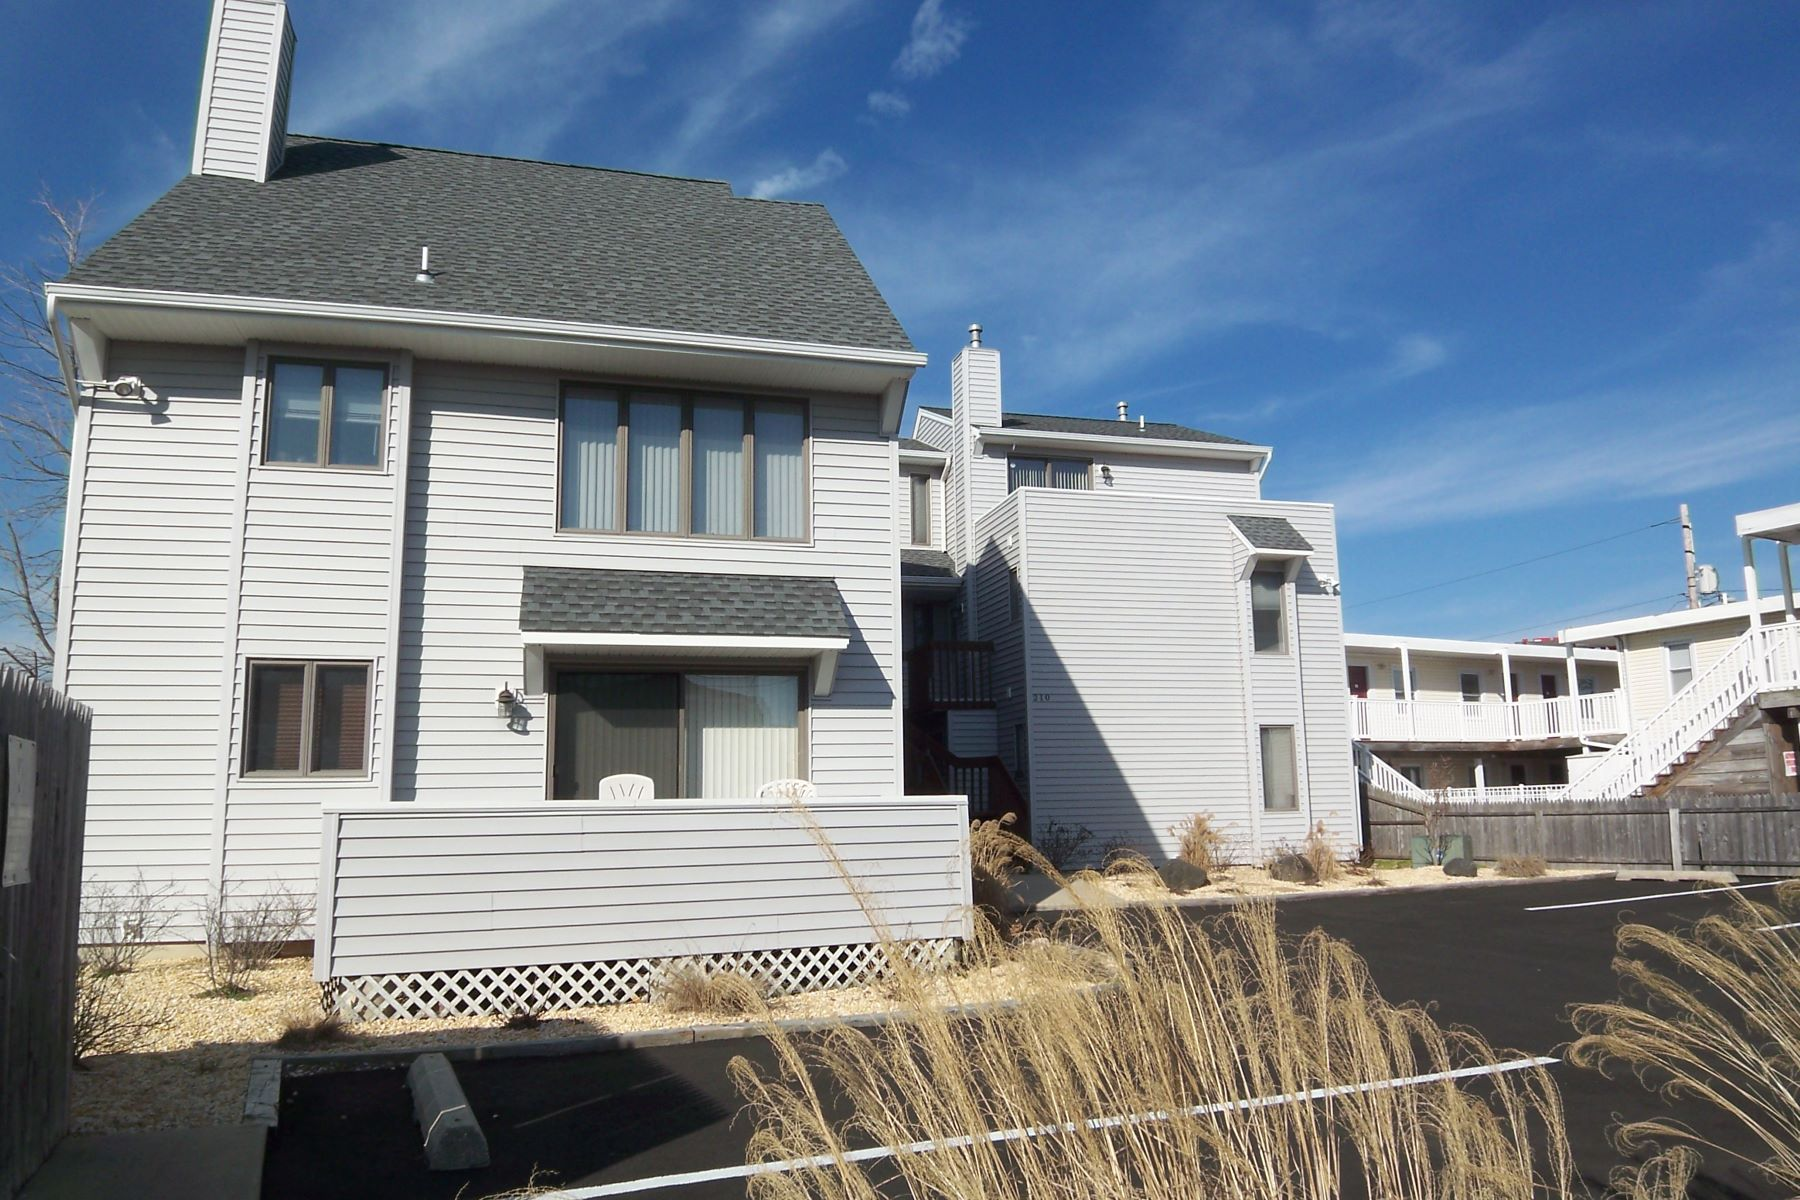 Condominium for Sale at Two Story Condo Near Beach 210 Sumner Ave #6 Seaside Heights, 08751 United States